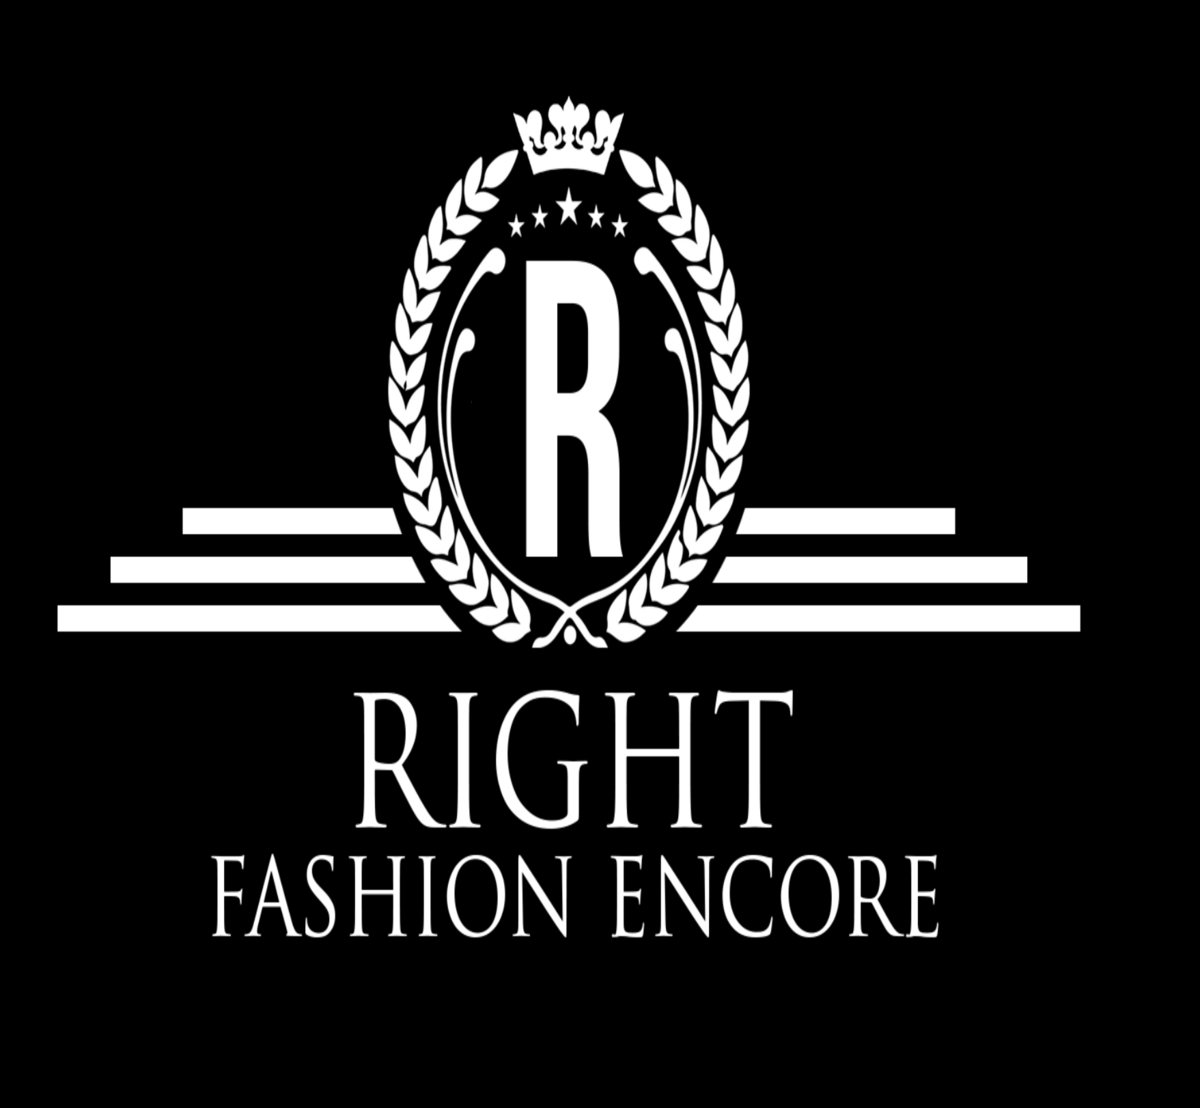 Right Fashion Encore